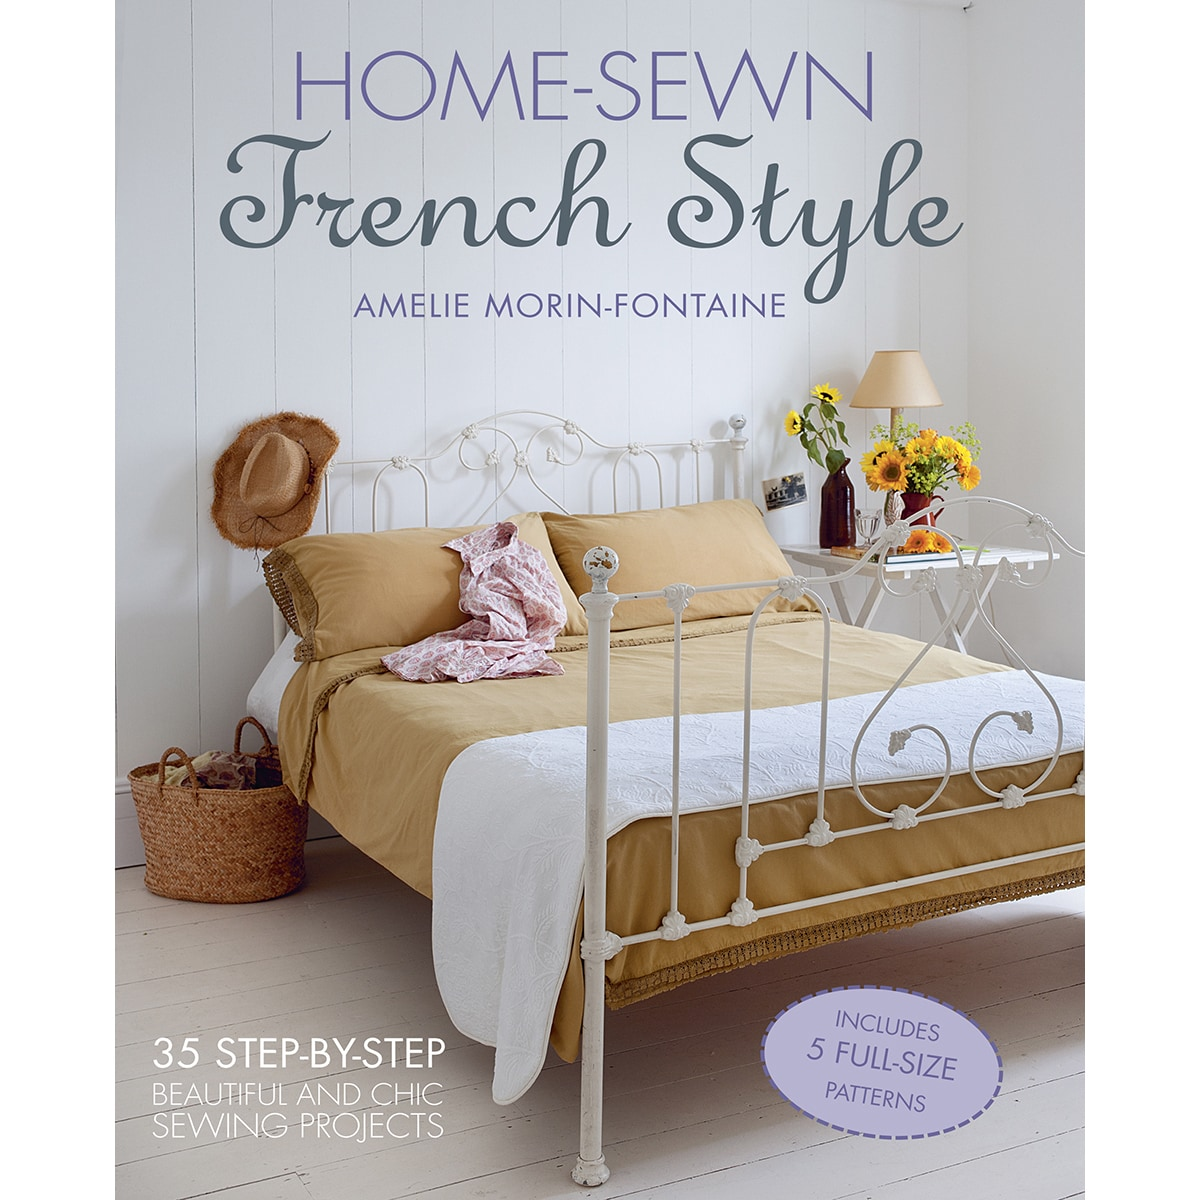 Home Sewn French Style by Amelie Morin-Fontaine Book